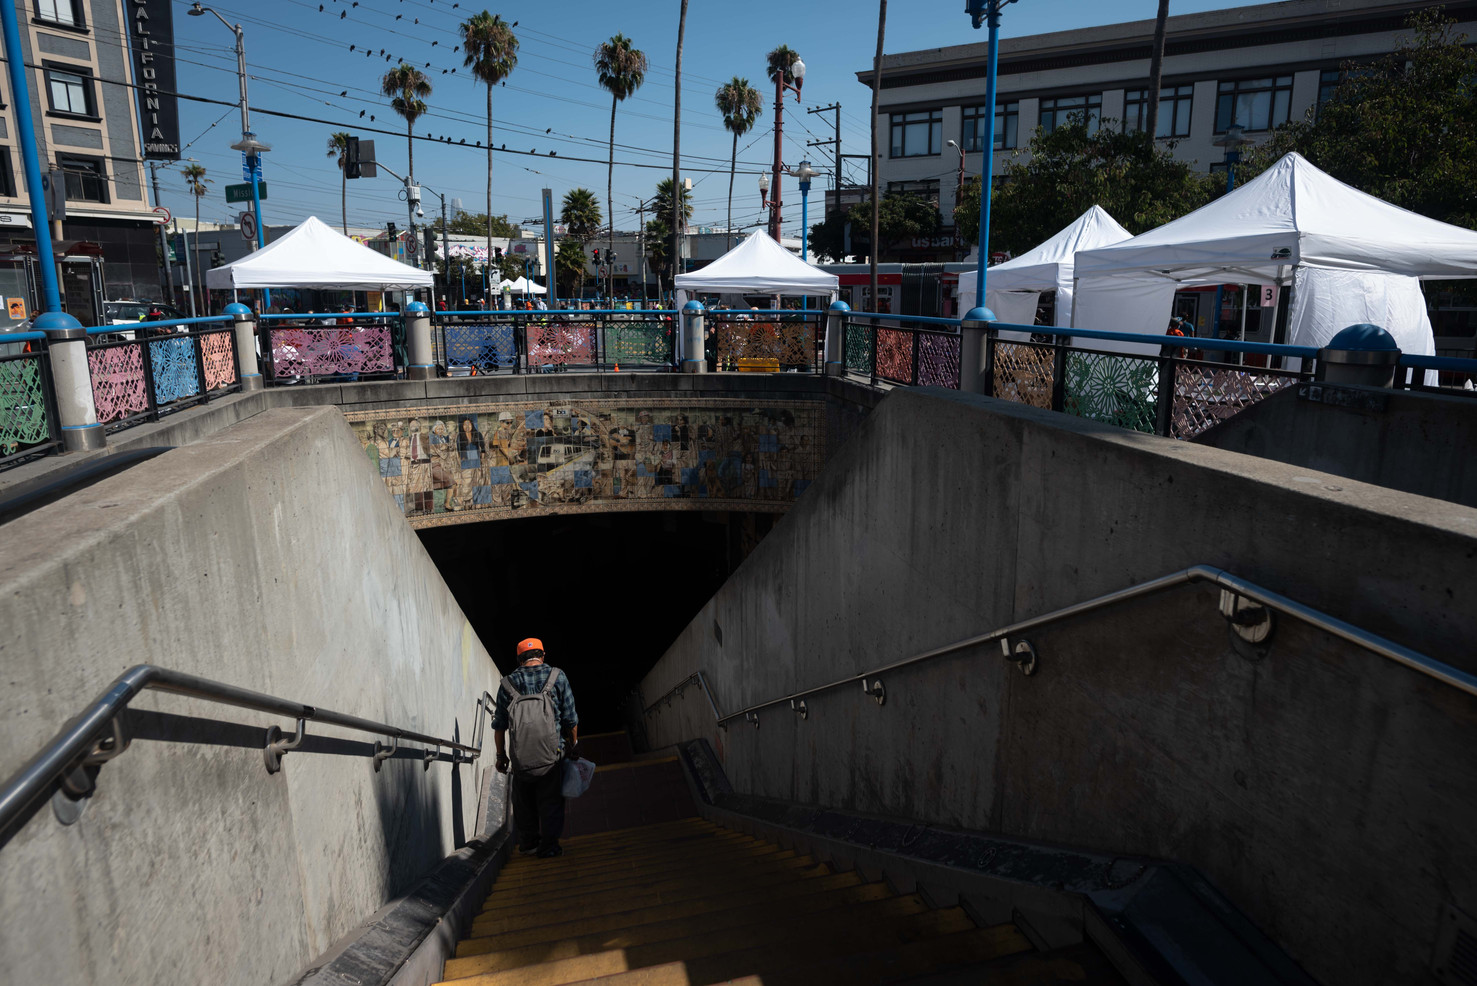 A service worker enters 16th Mission Bart station on his way to work after being tested for COVID19 at the pop up test site strategically placed around the station for commuters. The series of low barrier testing for essential workers is put on by Unidos en Salud - a partnership between UC San Francisco Medical School and Latino Task Force for COVID19. Marginalized Latino and Black communities suffer disproportionately from the highest rates of infection as they work essential jobs to keep the country running during quarantine.